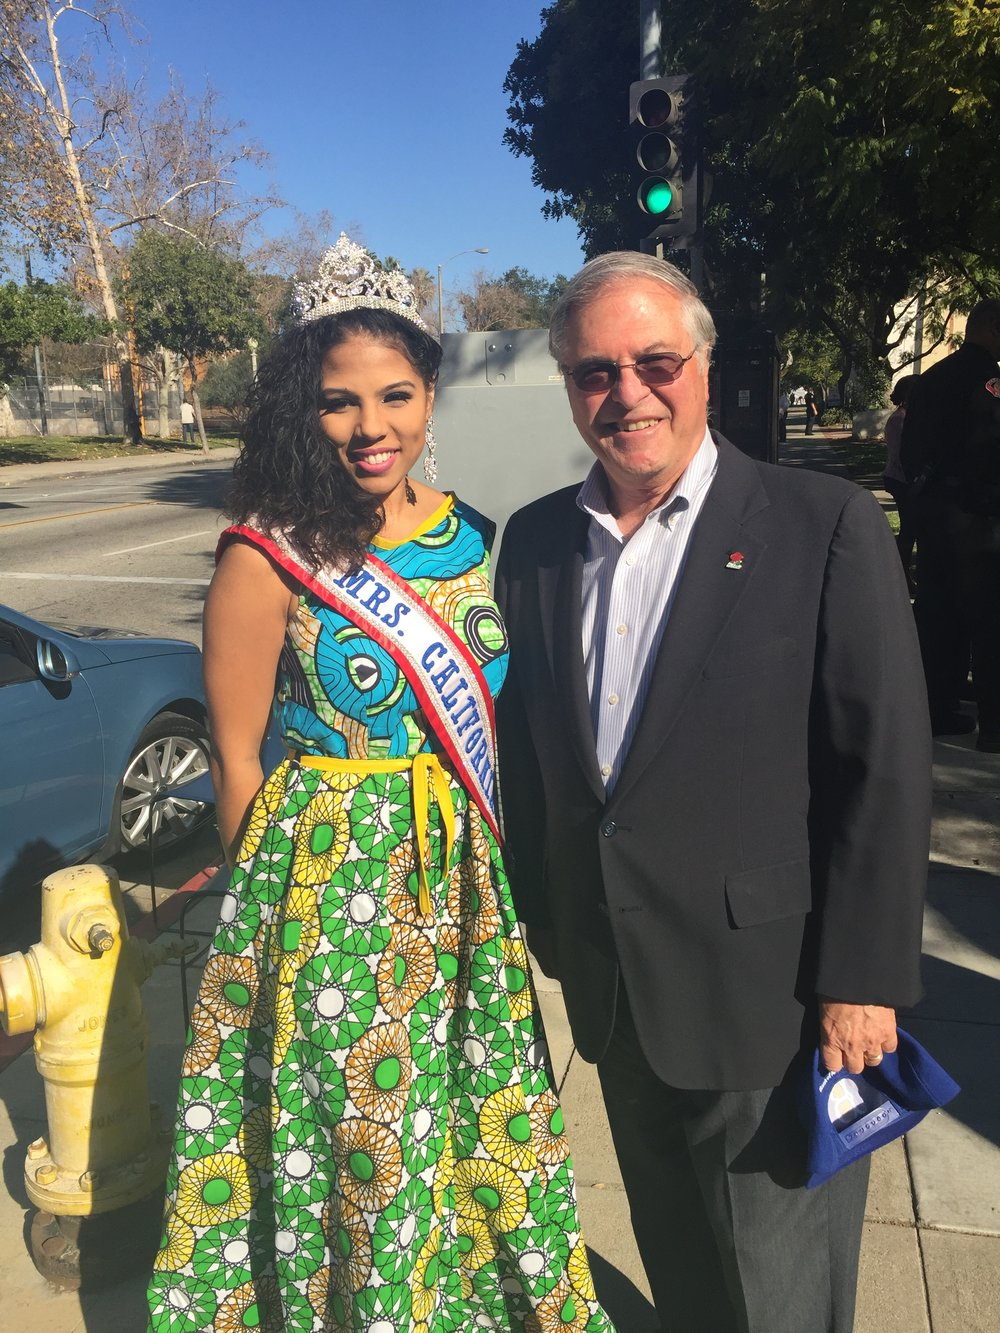 Mrs. California America with Pasadena City Mayor Terry Tornek at the 36th Annual Black History Parade